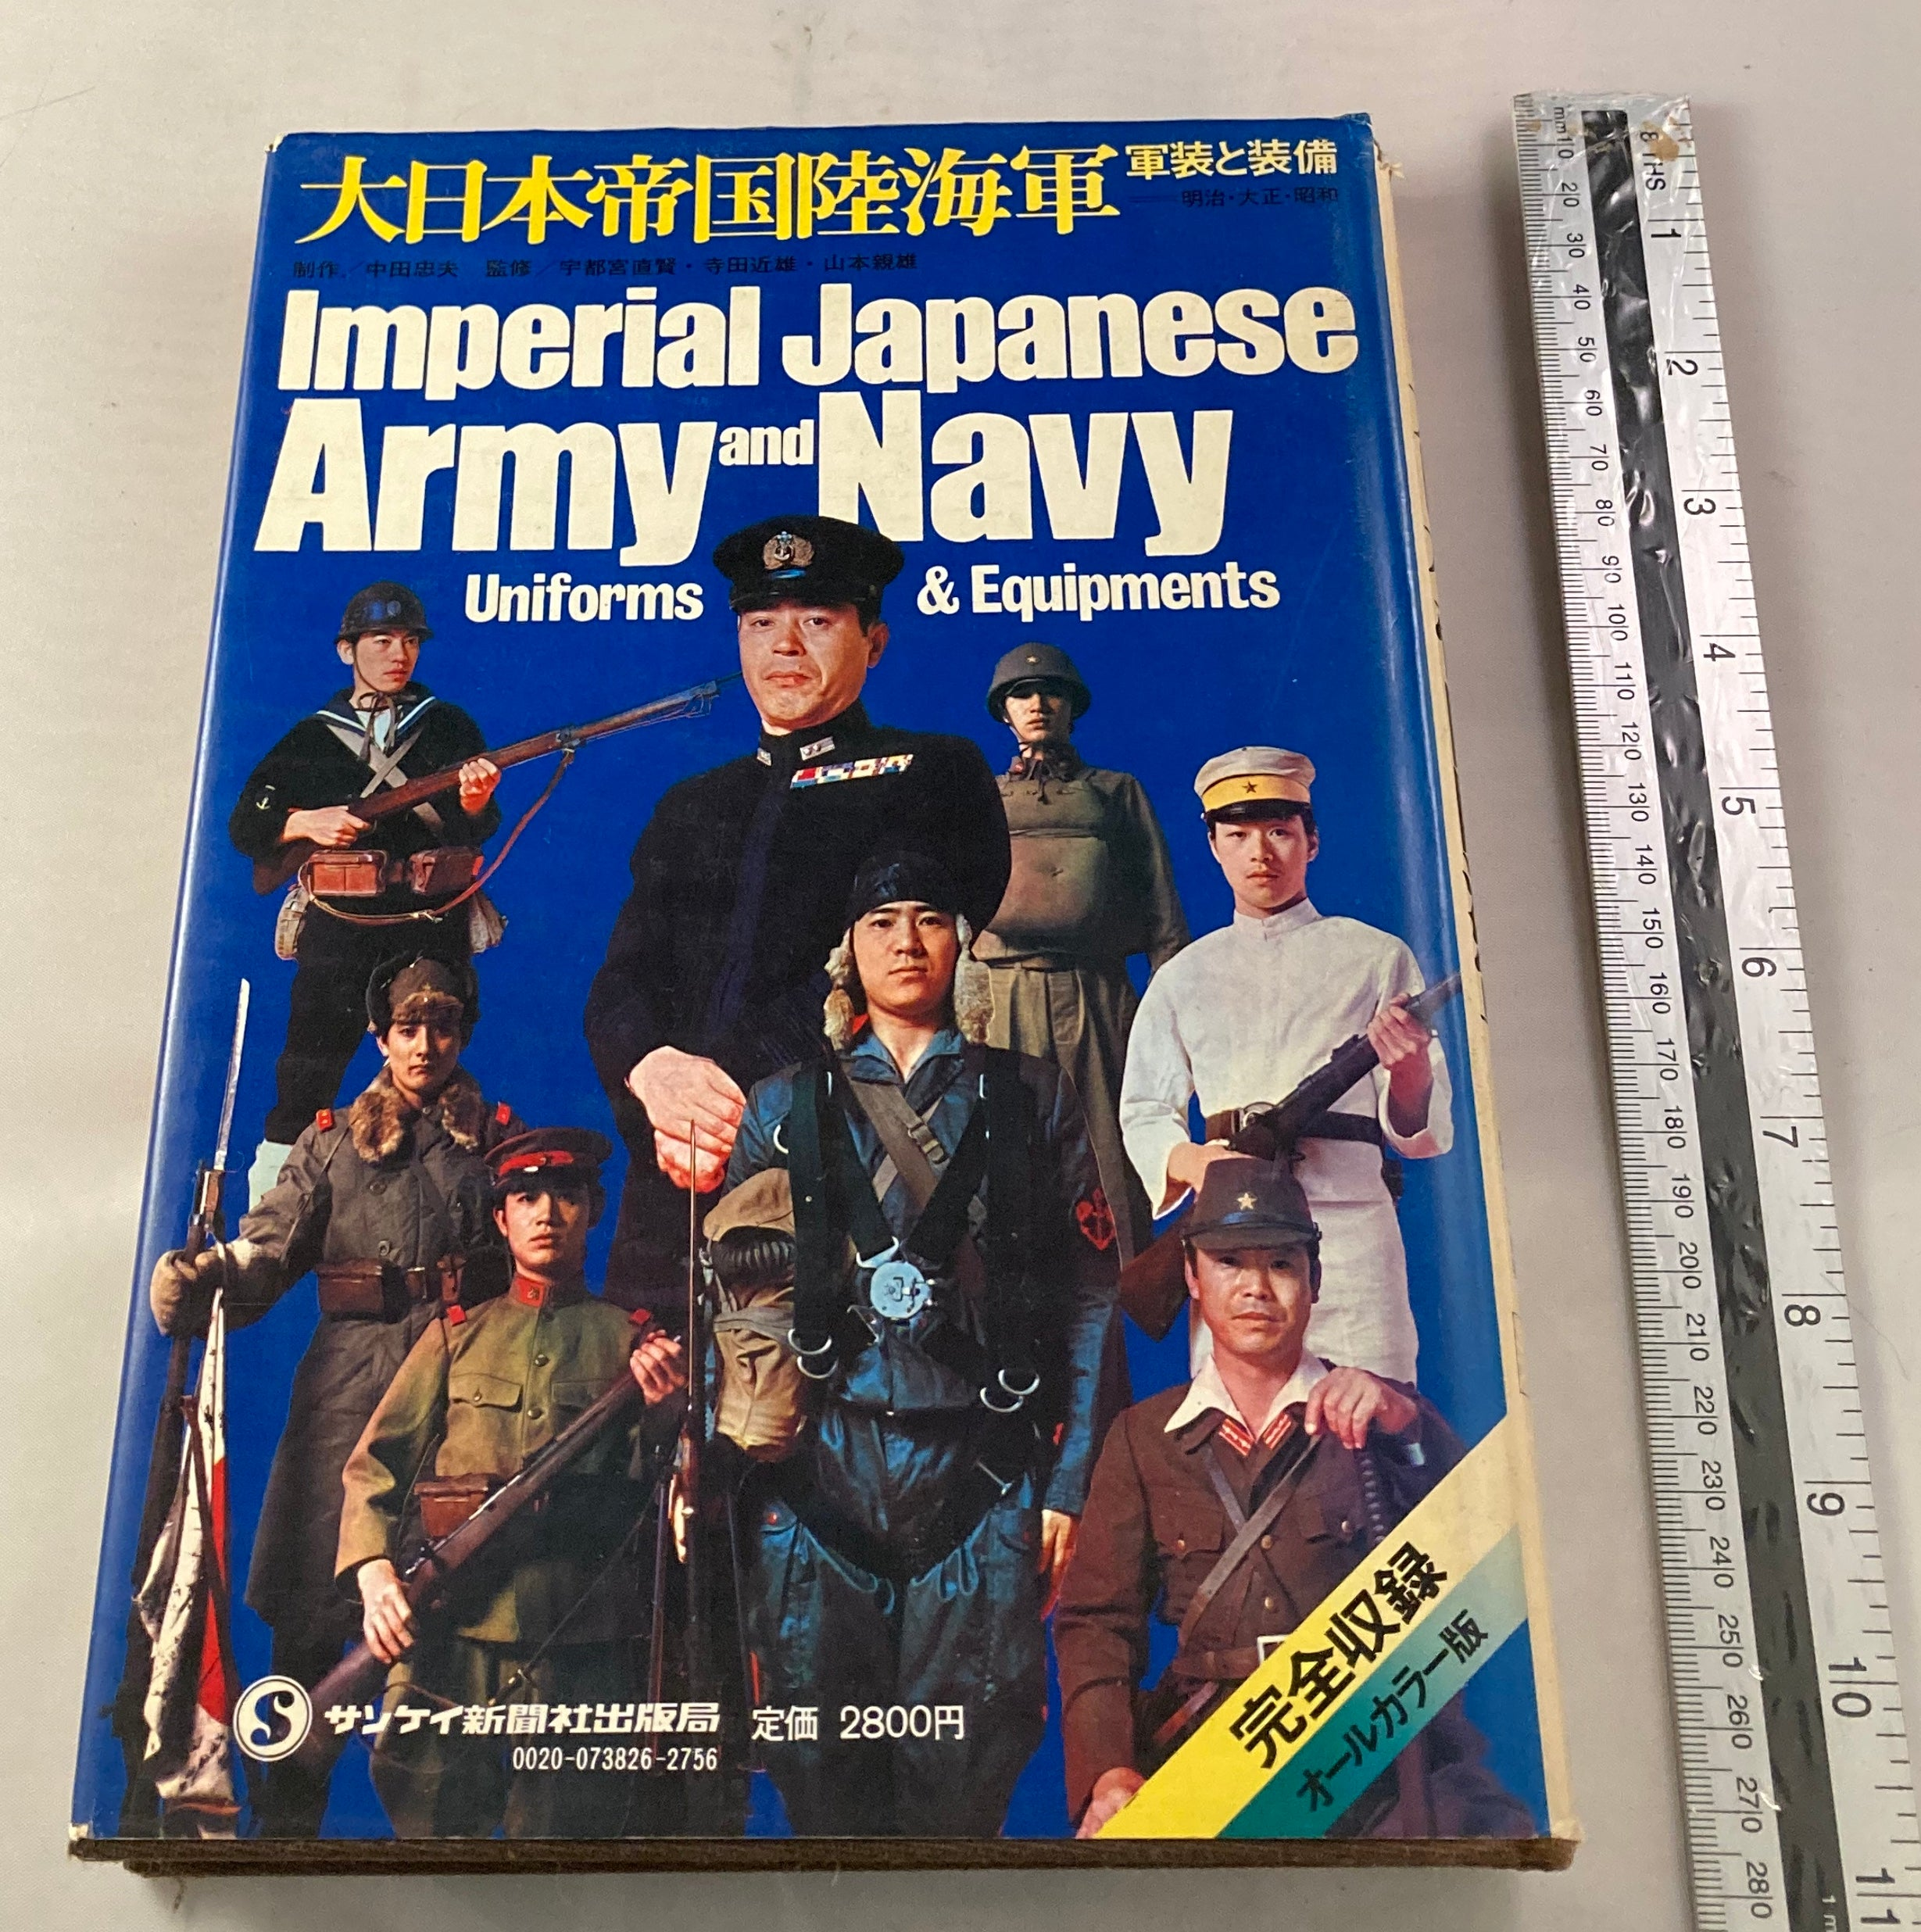 Imperial Japanese Army and Navy uniforms and Equipment. - Yamazakura